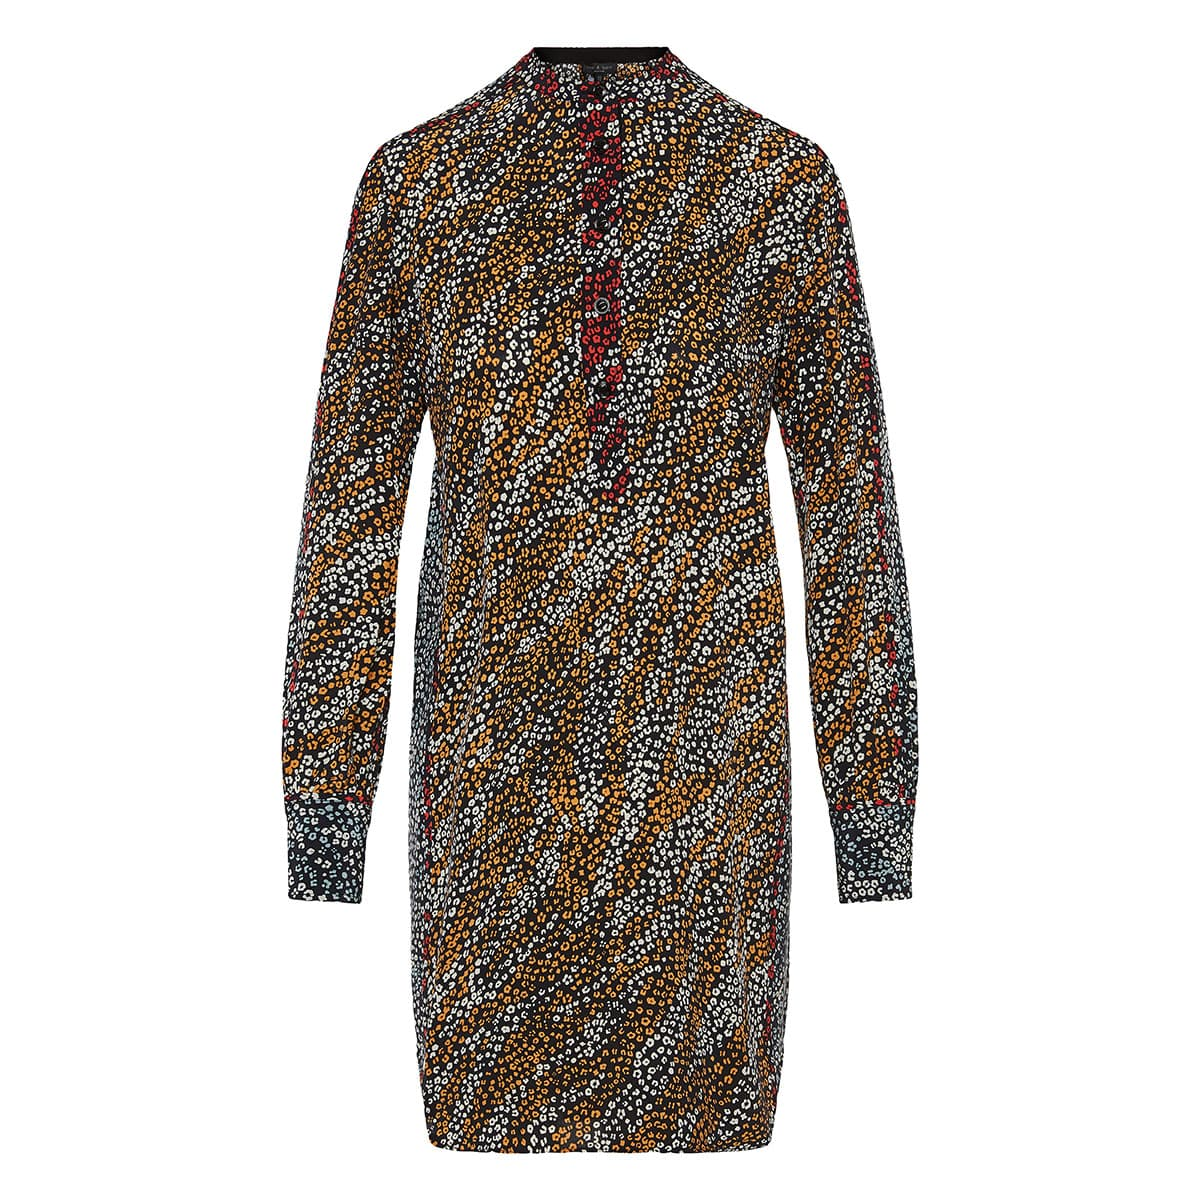 Colette printed shirt dress